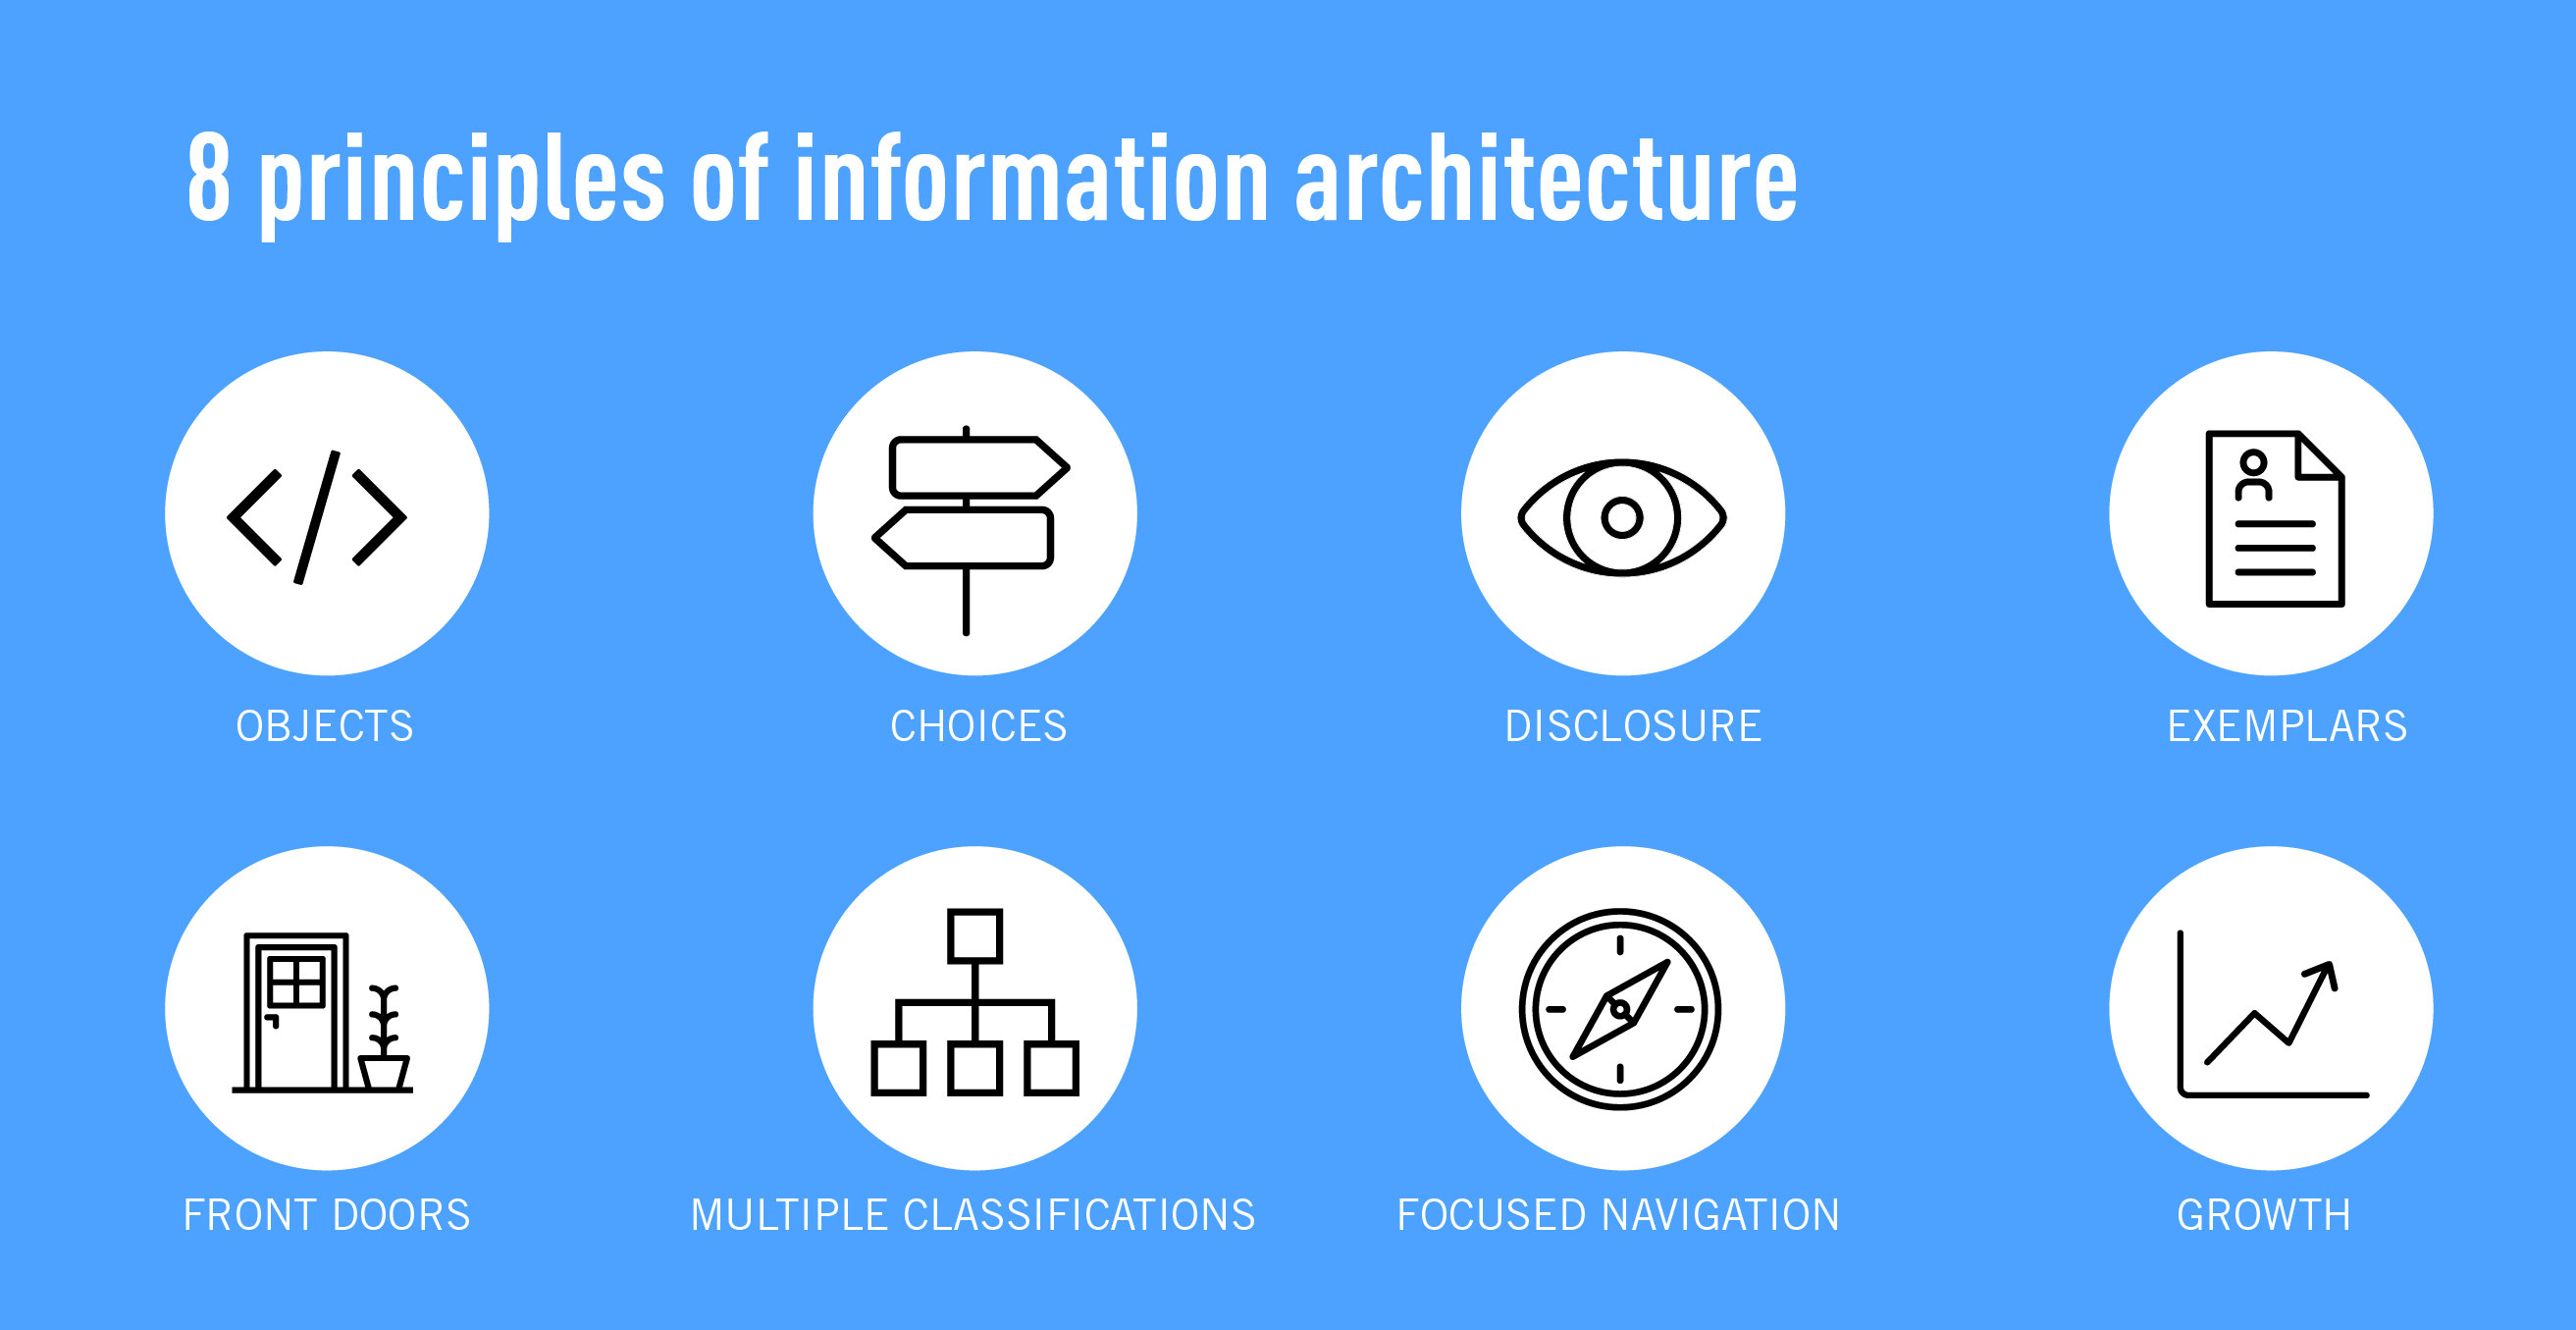 The 8 principles of information architecture in UX design